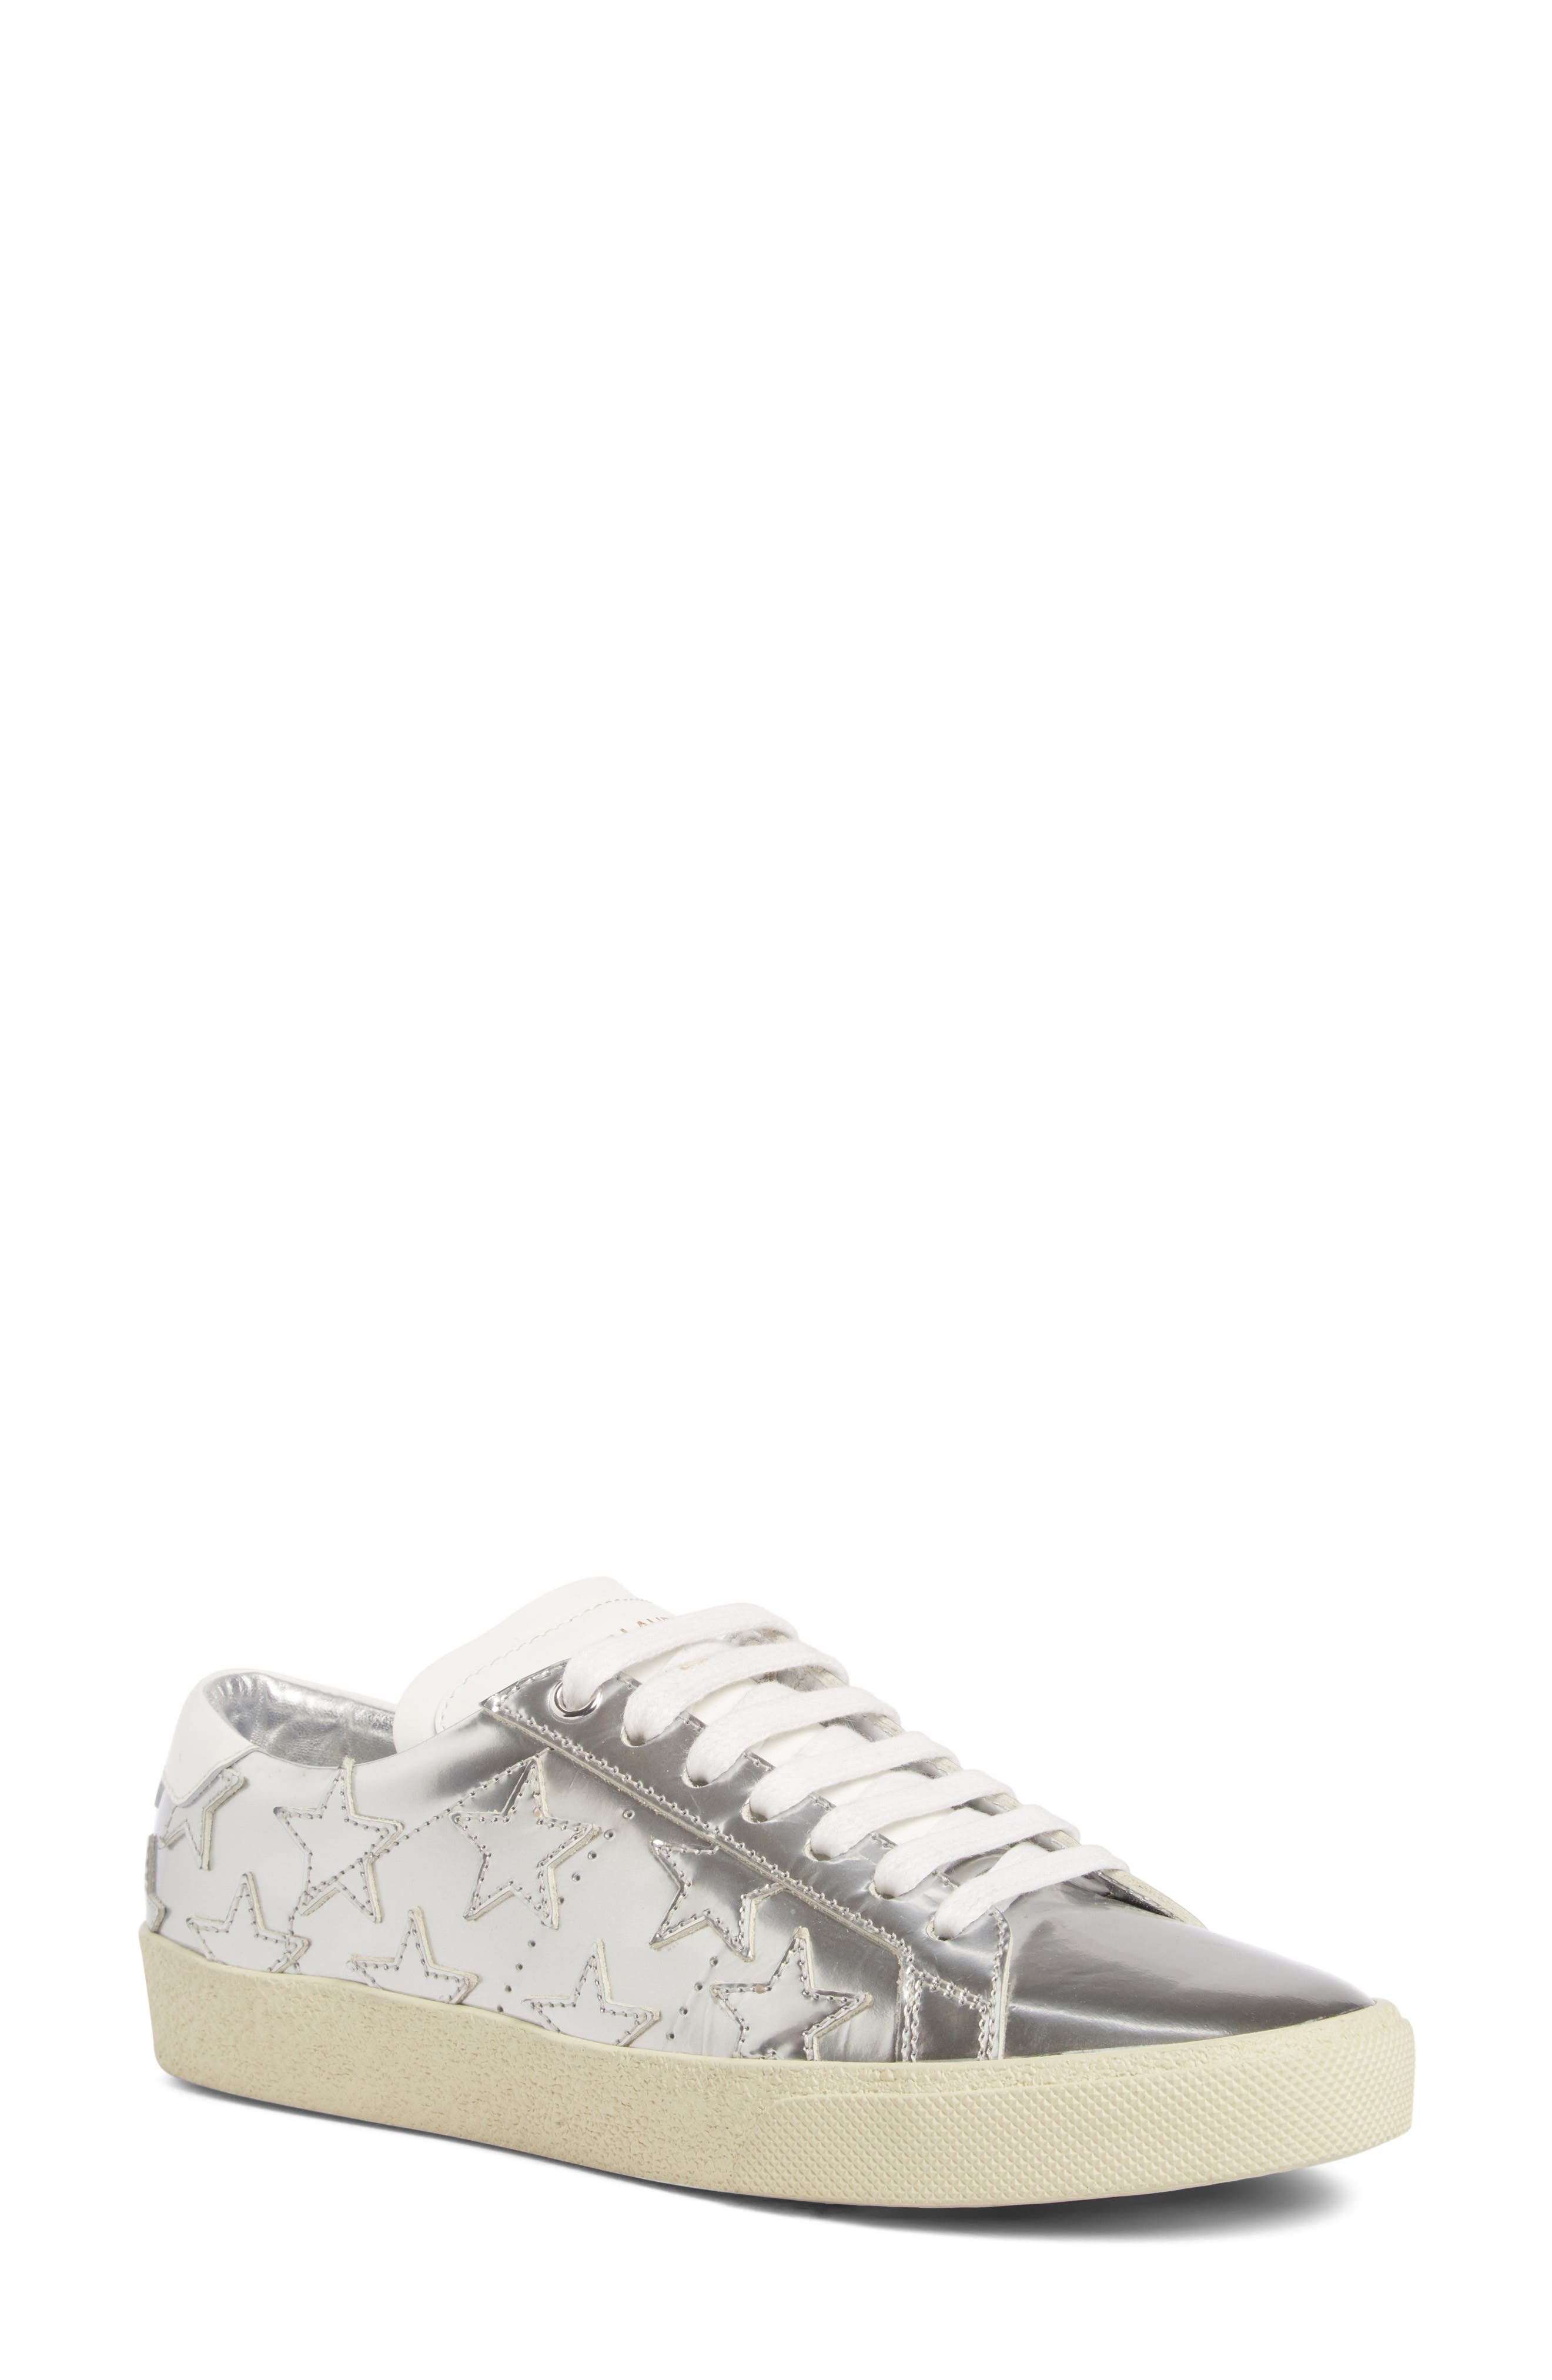 Classic Court Stars Sneaker,                             Main thumbnail 1, color,                             Metallic Silver